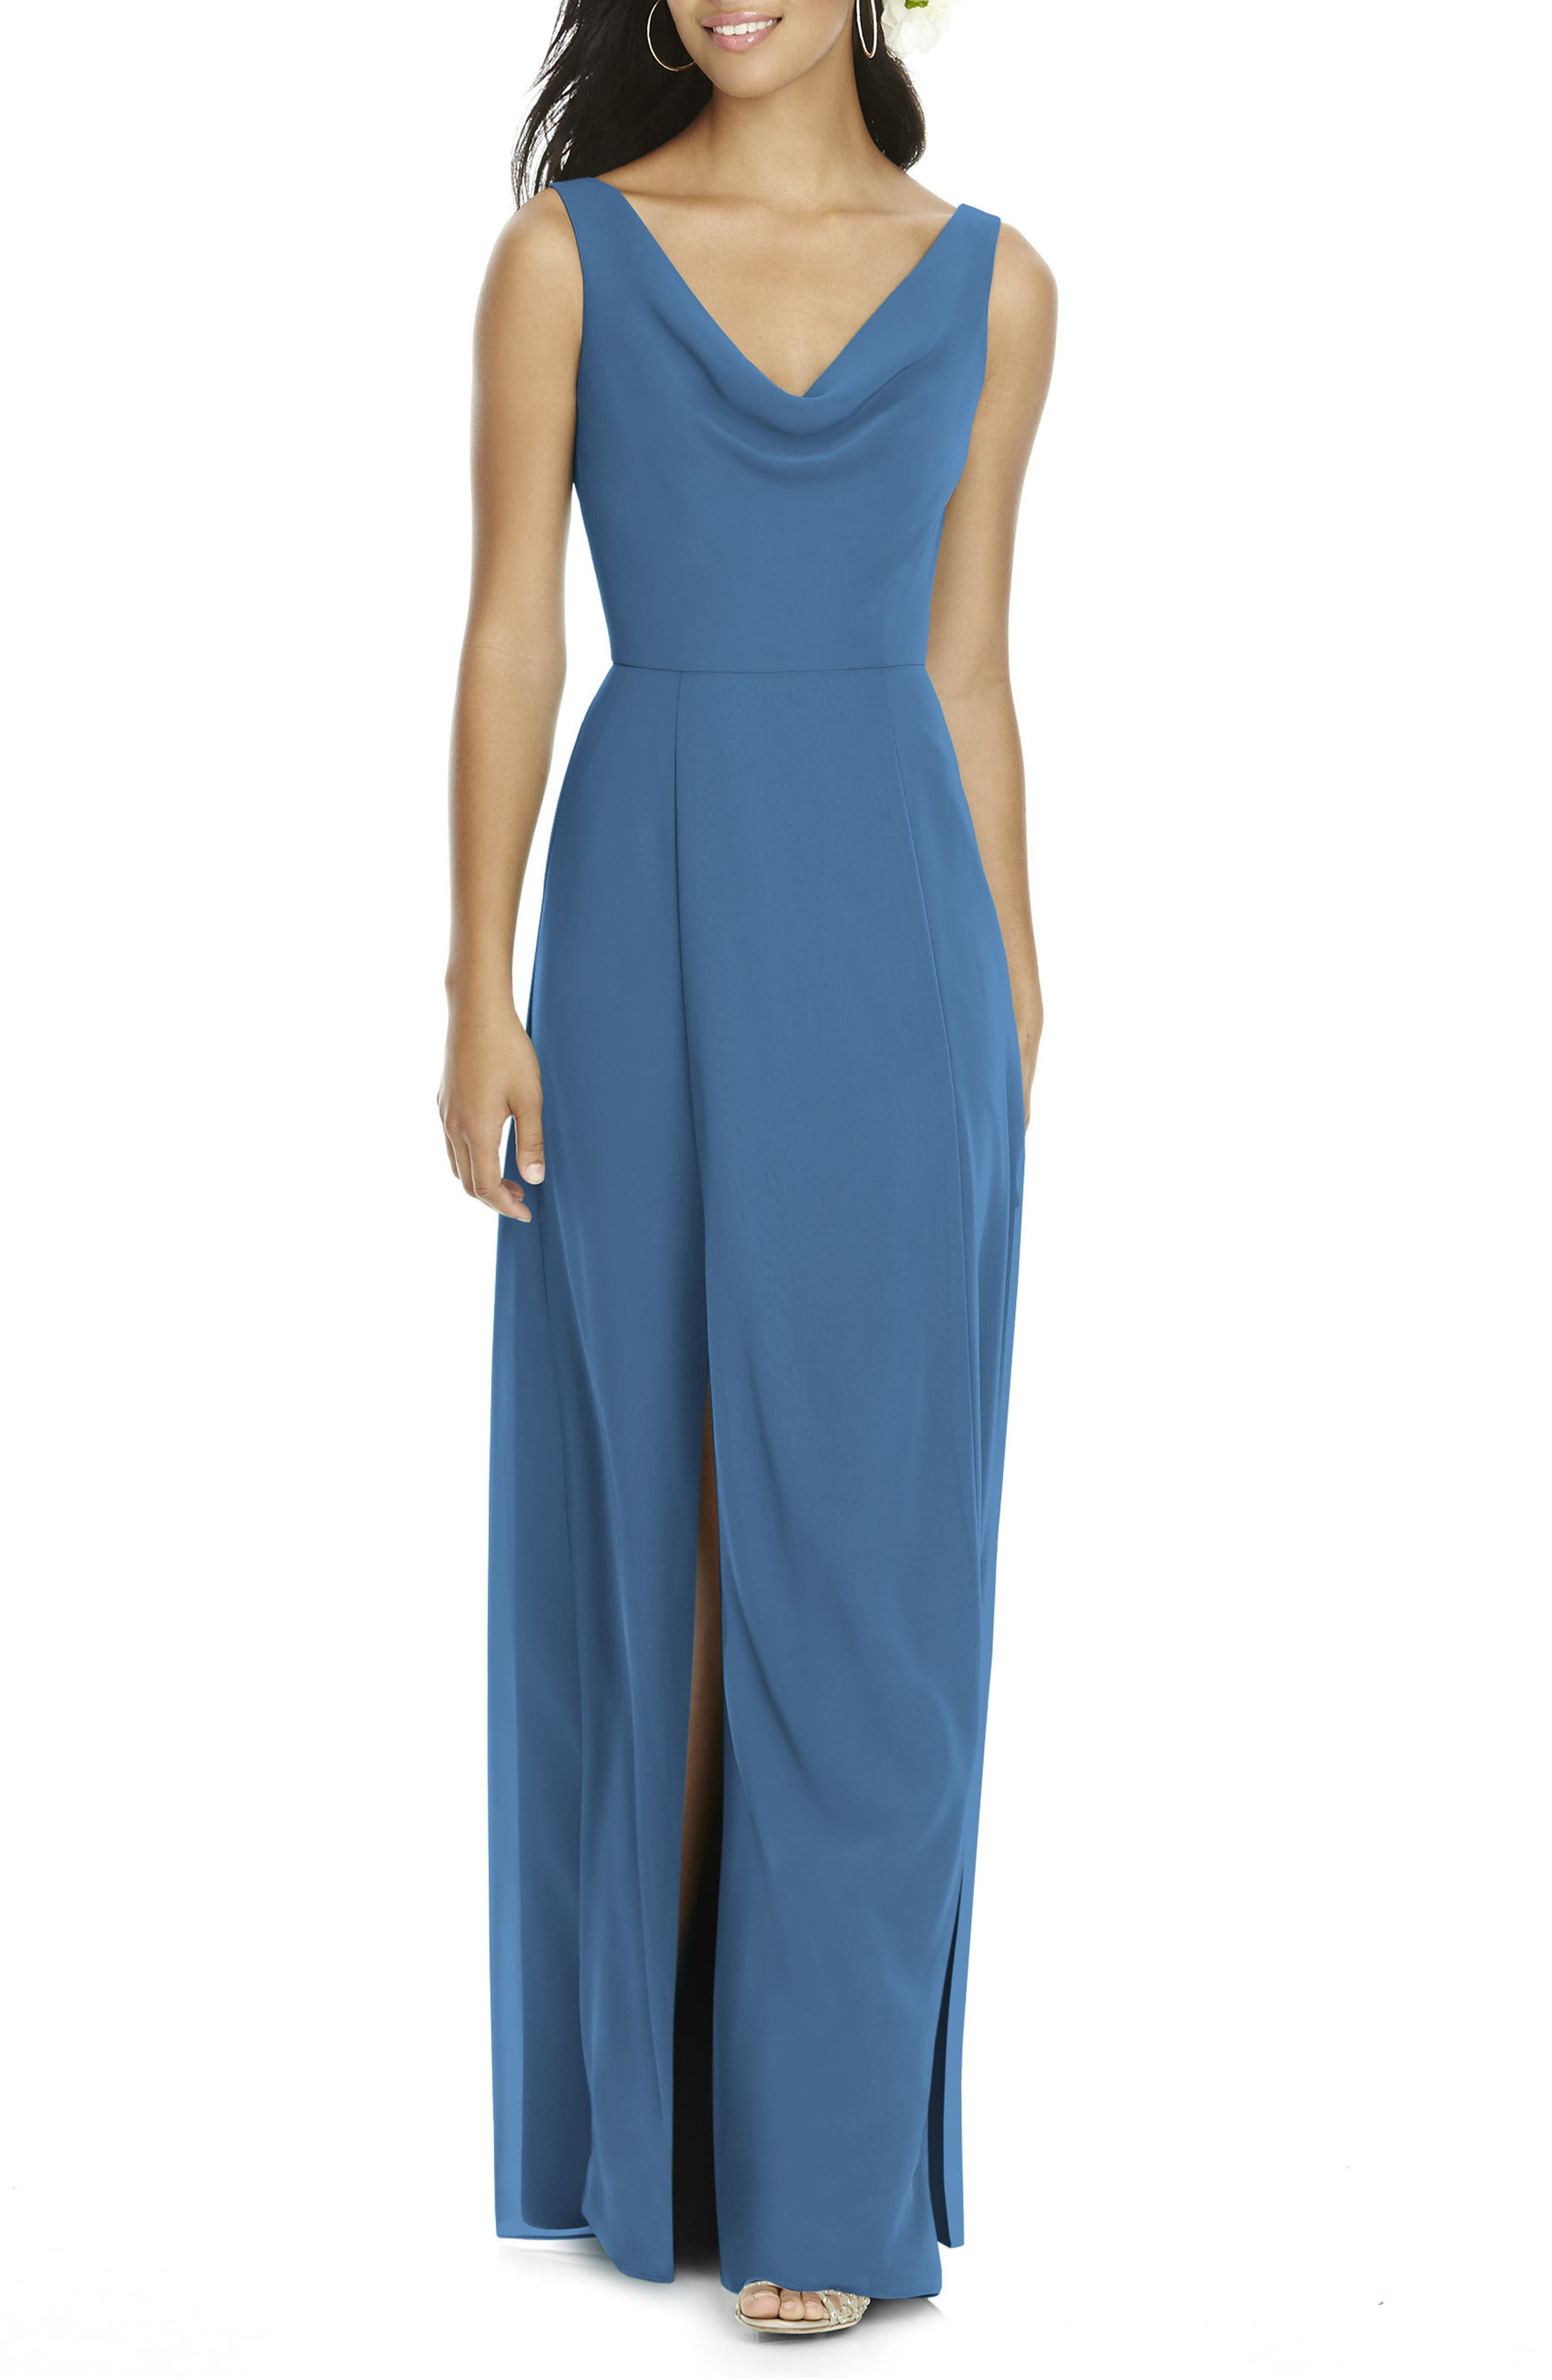 Alternate Image 1 Selected - Social Bridesmaids Cowl Neck Chiffon Gown